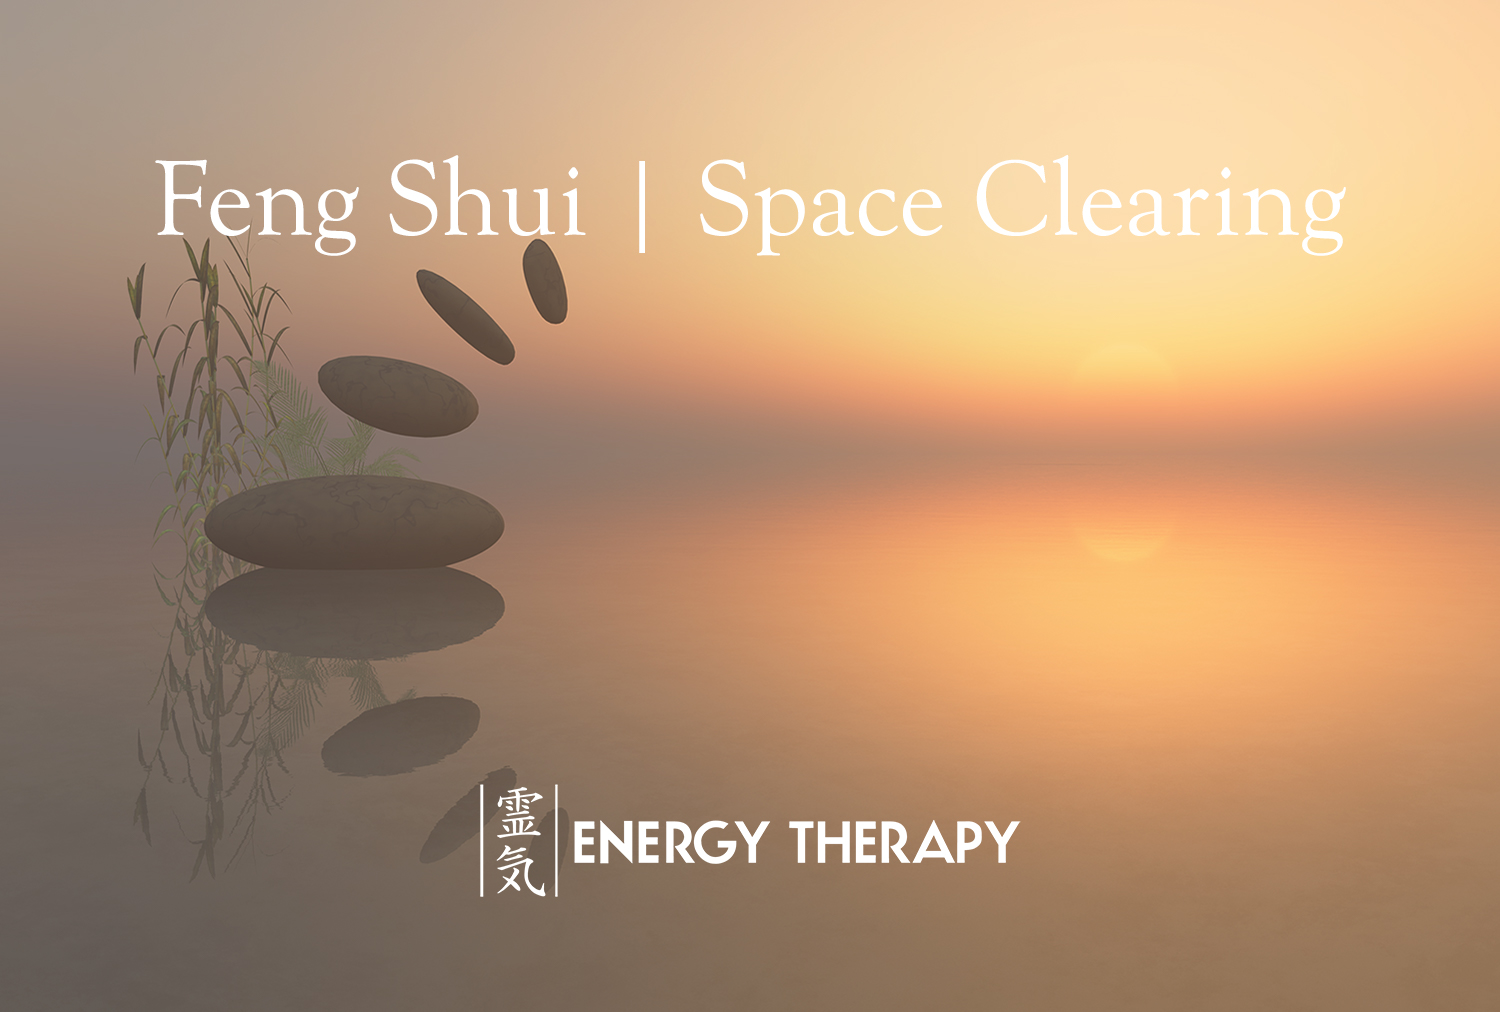 feng shui space clearing